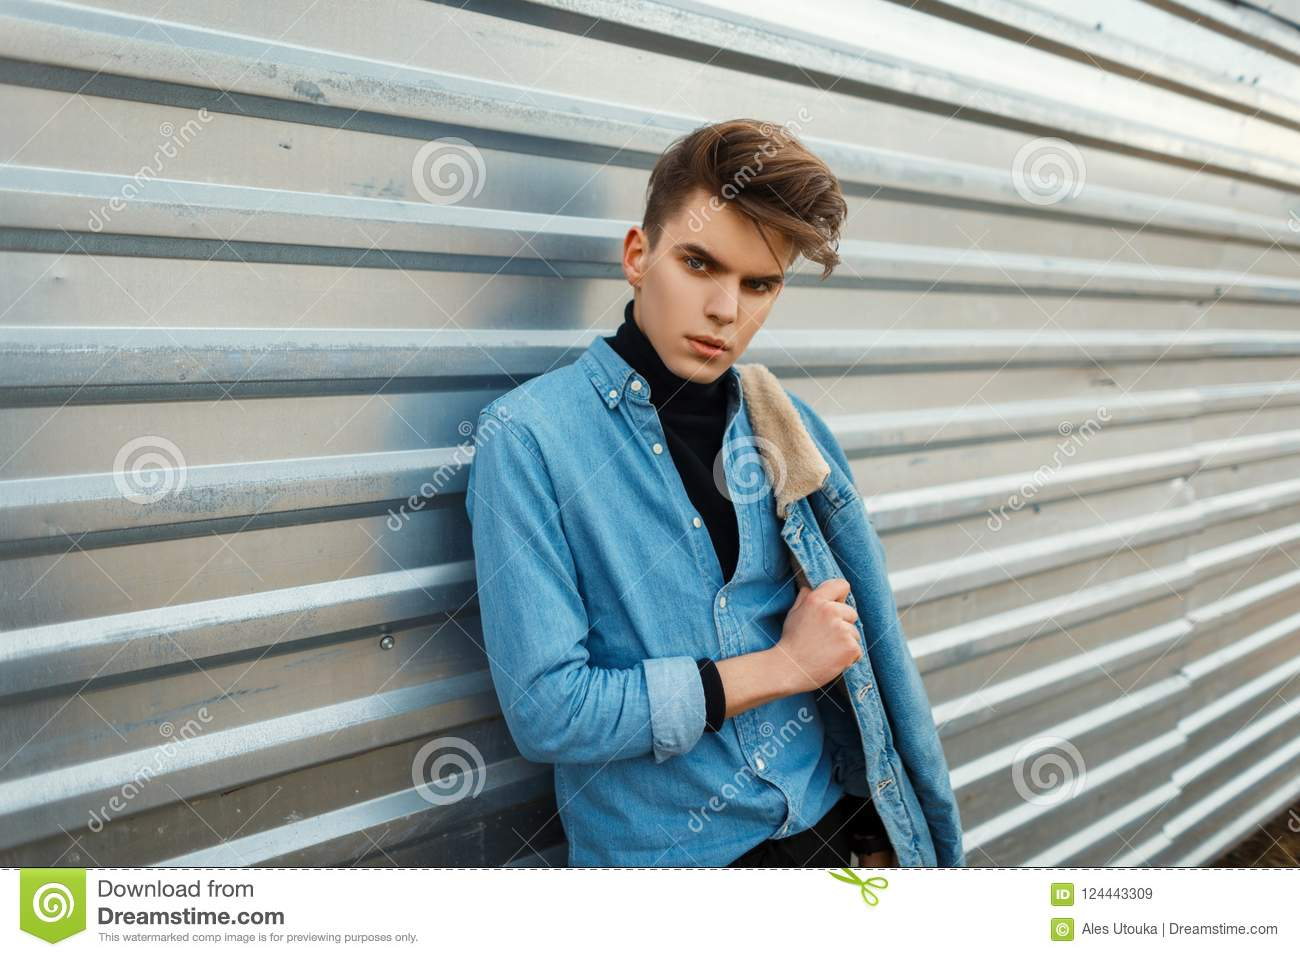 Handsome Young Man With A Hairstyle In Fashionable Jeans Clothes